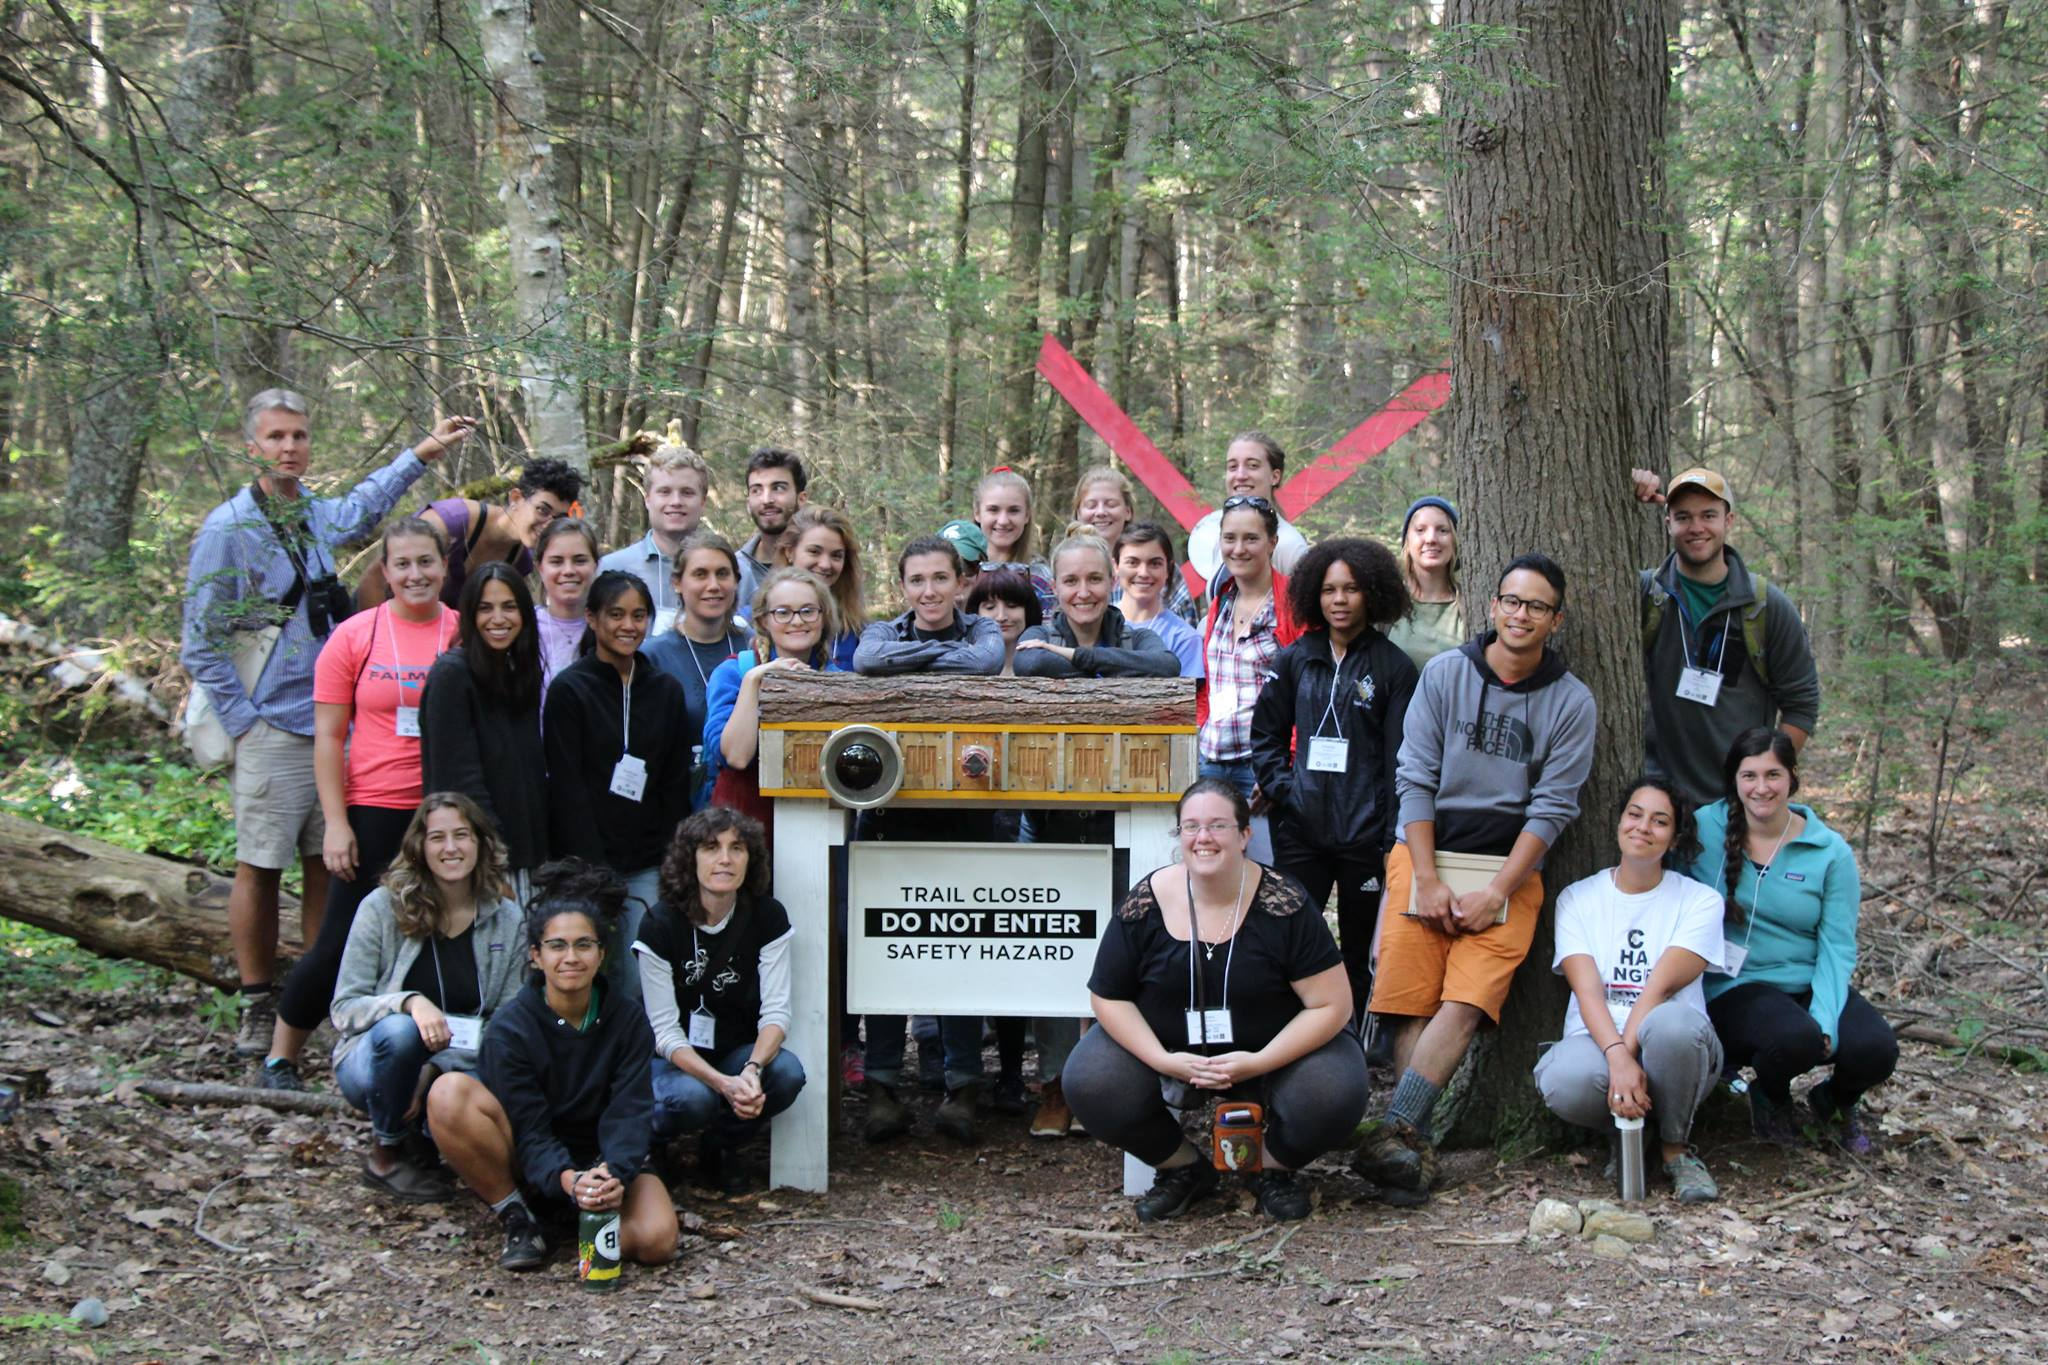 The 2017-18 TerraCorps members at their orientation in August, 2017 after a tour of the Harvard Forest led by Brian Hall